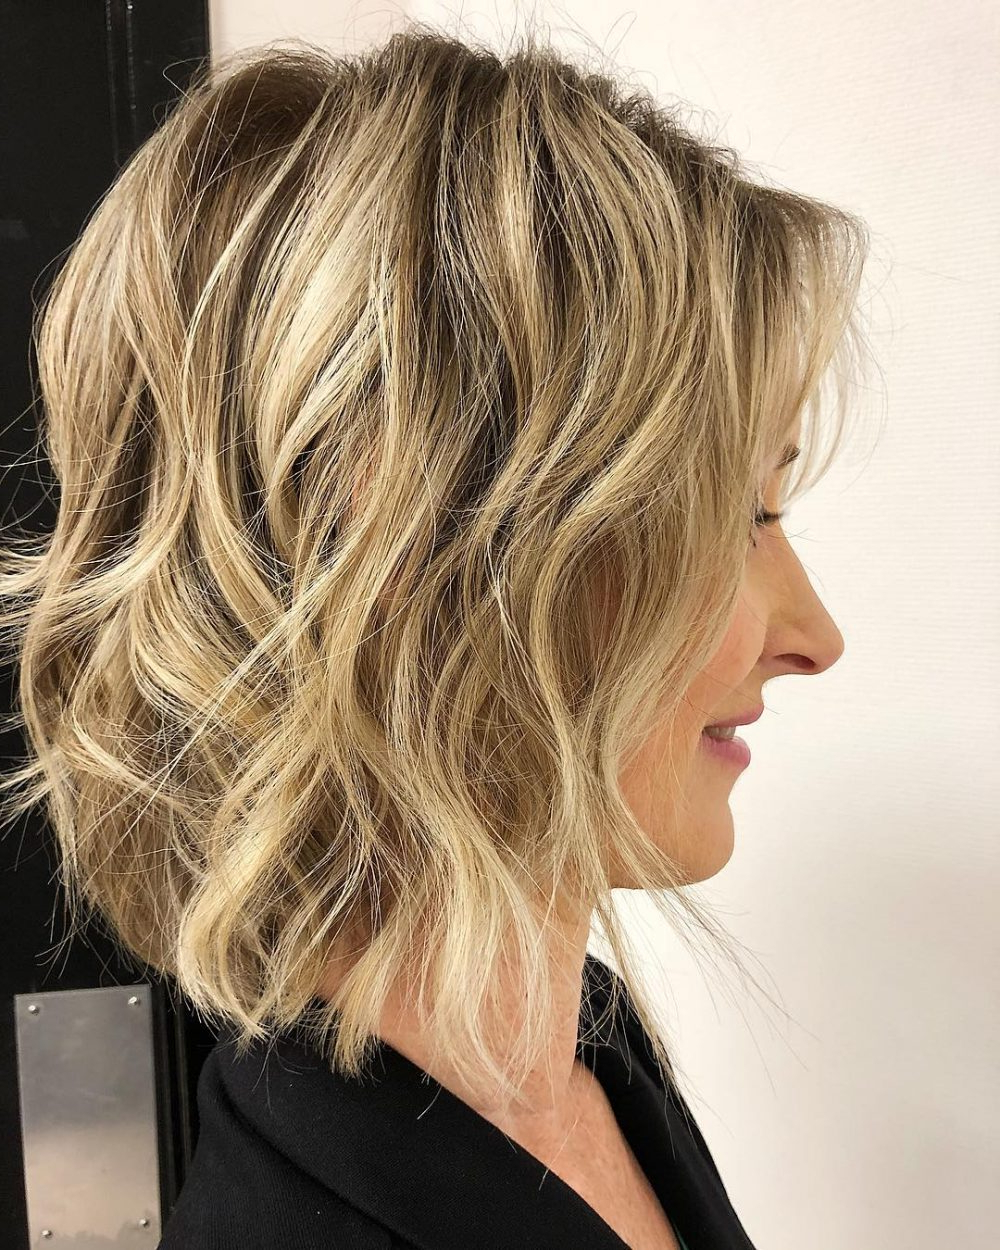 43 Perfect Short Hairstyles For Fine Hair In 2019 Regarding Well Known Medium Haircuts To Add Volume (View 5 of 20)